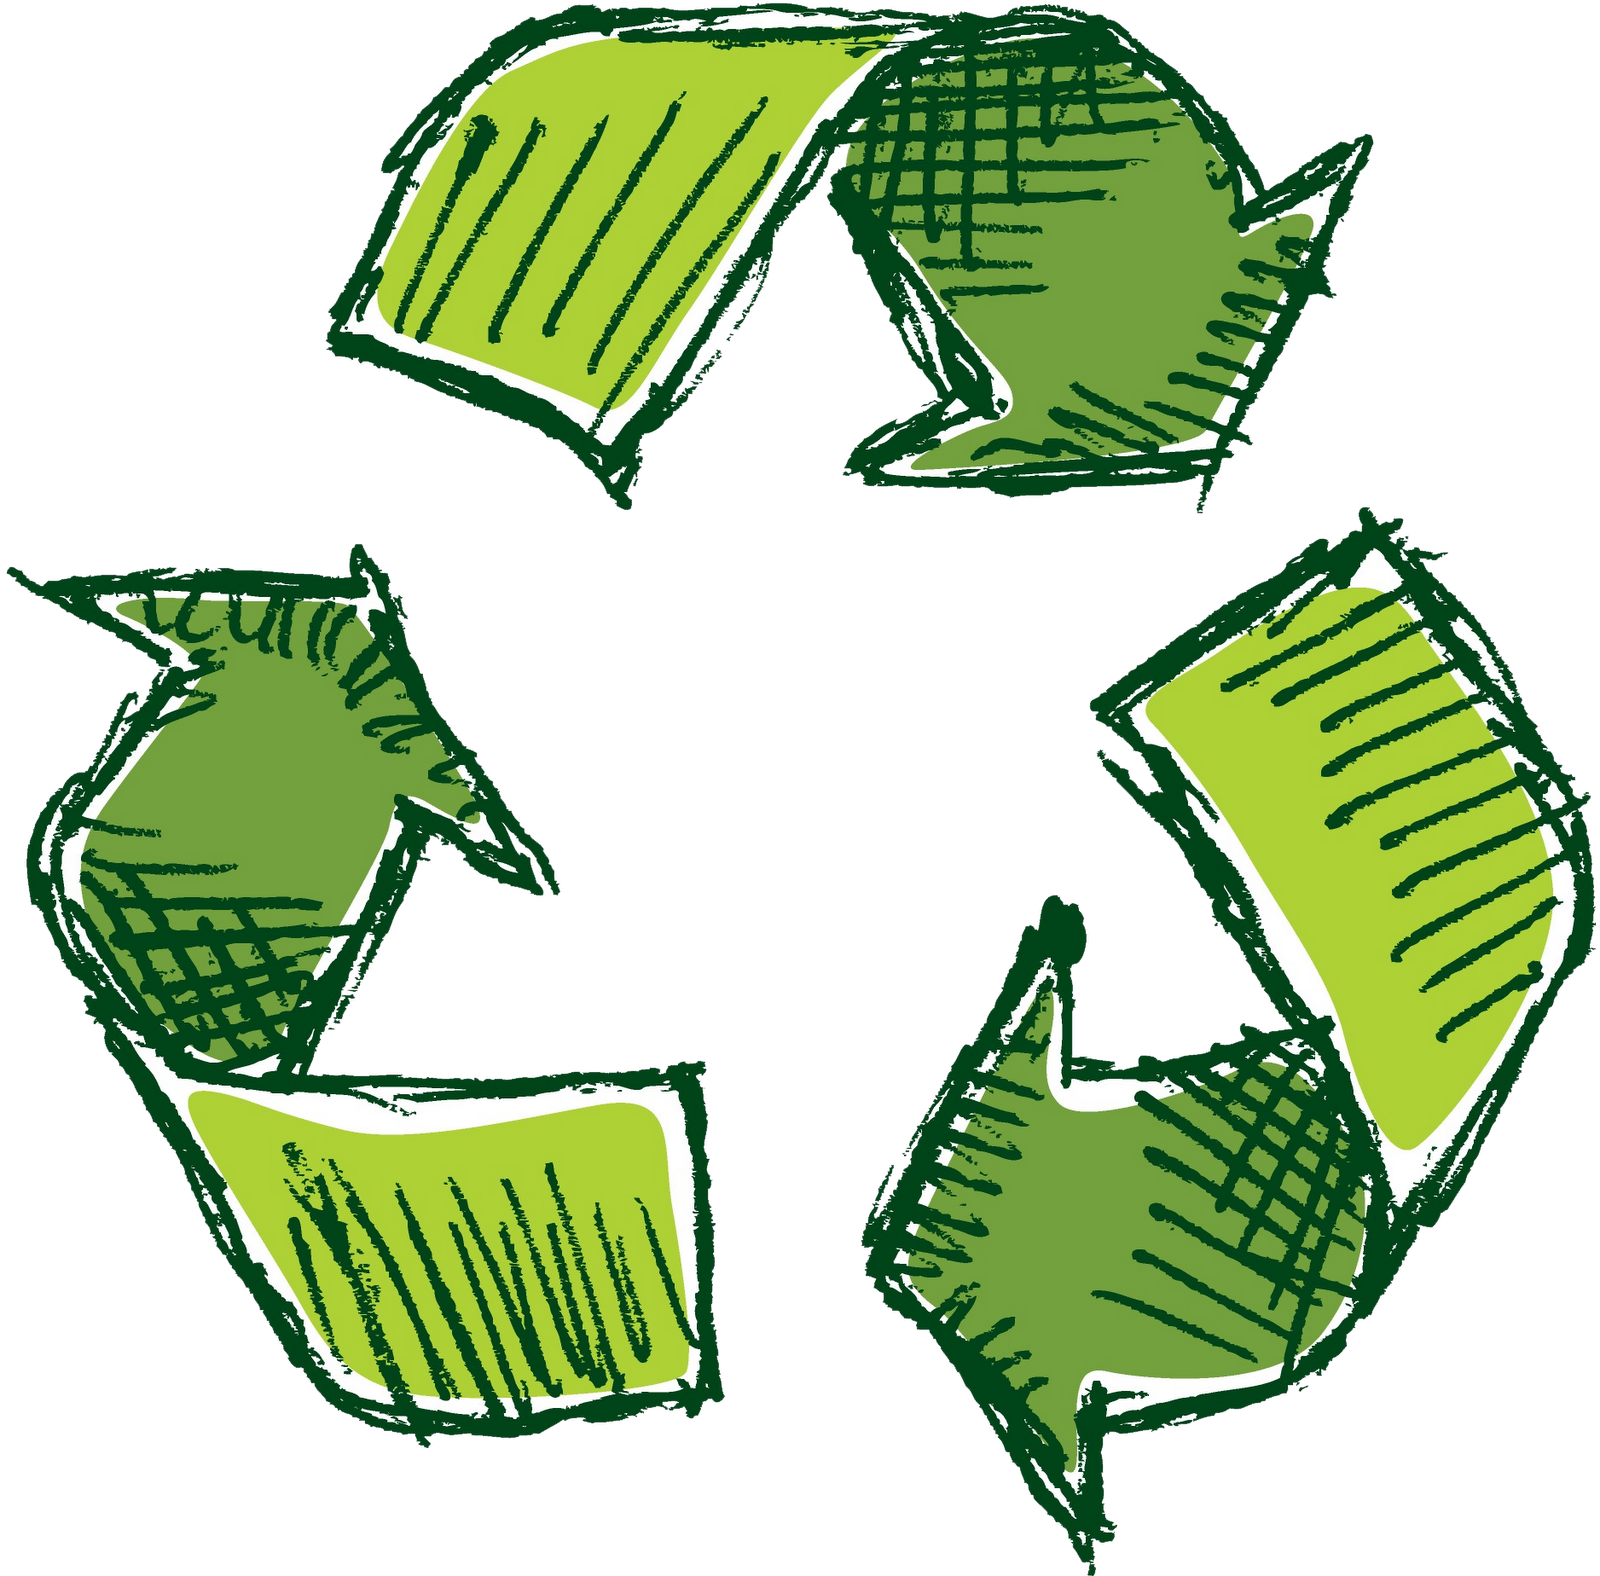 Recycle only no png. Environment clipart background image